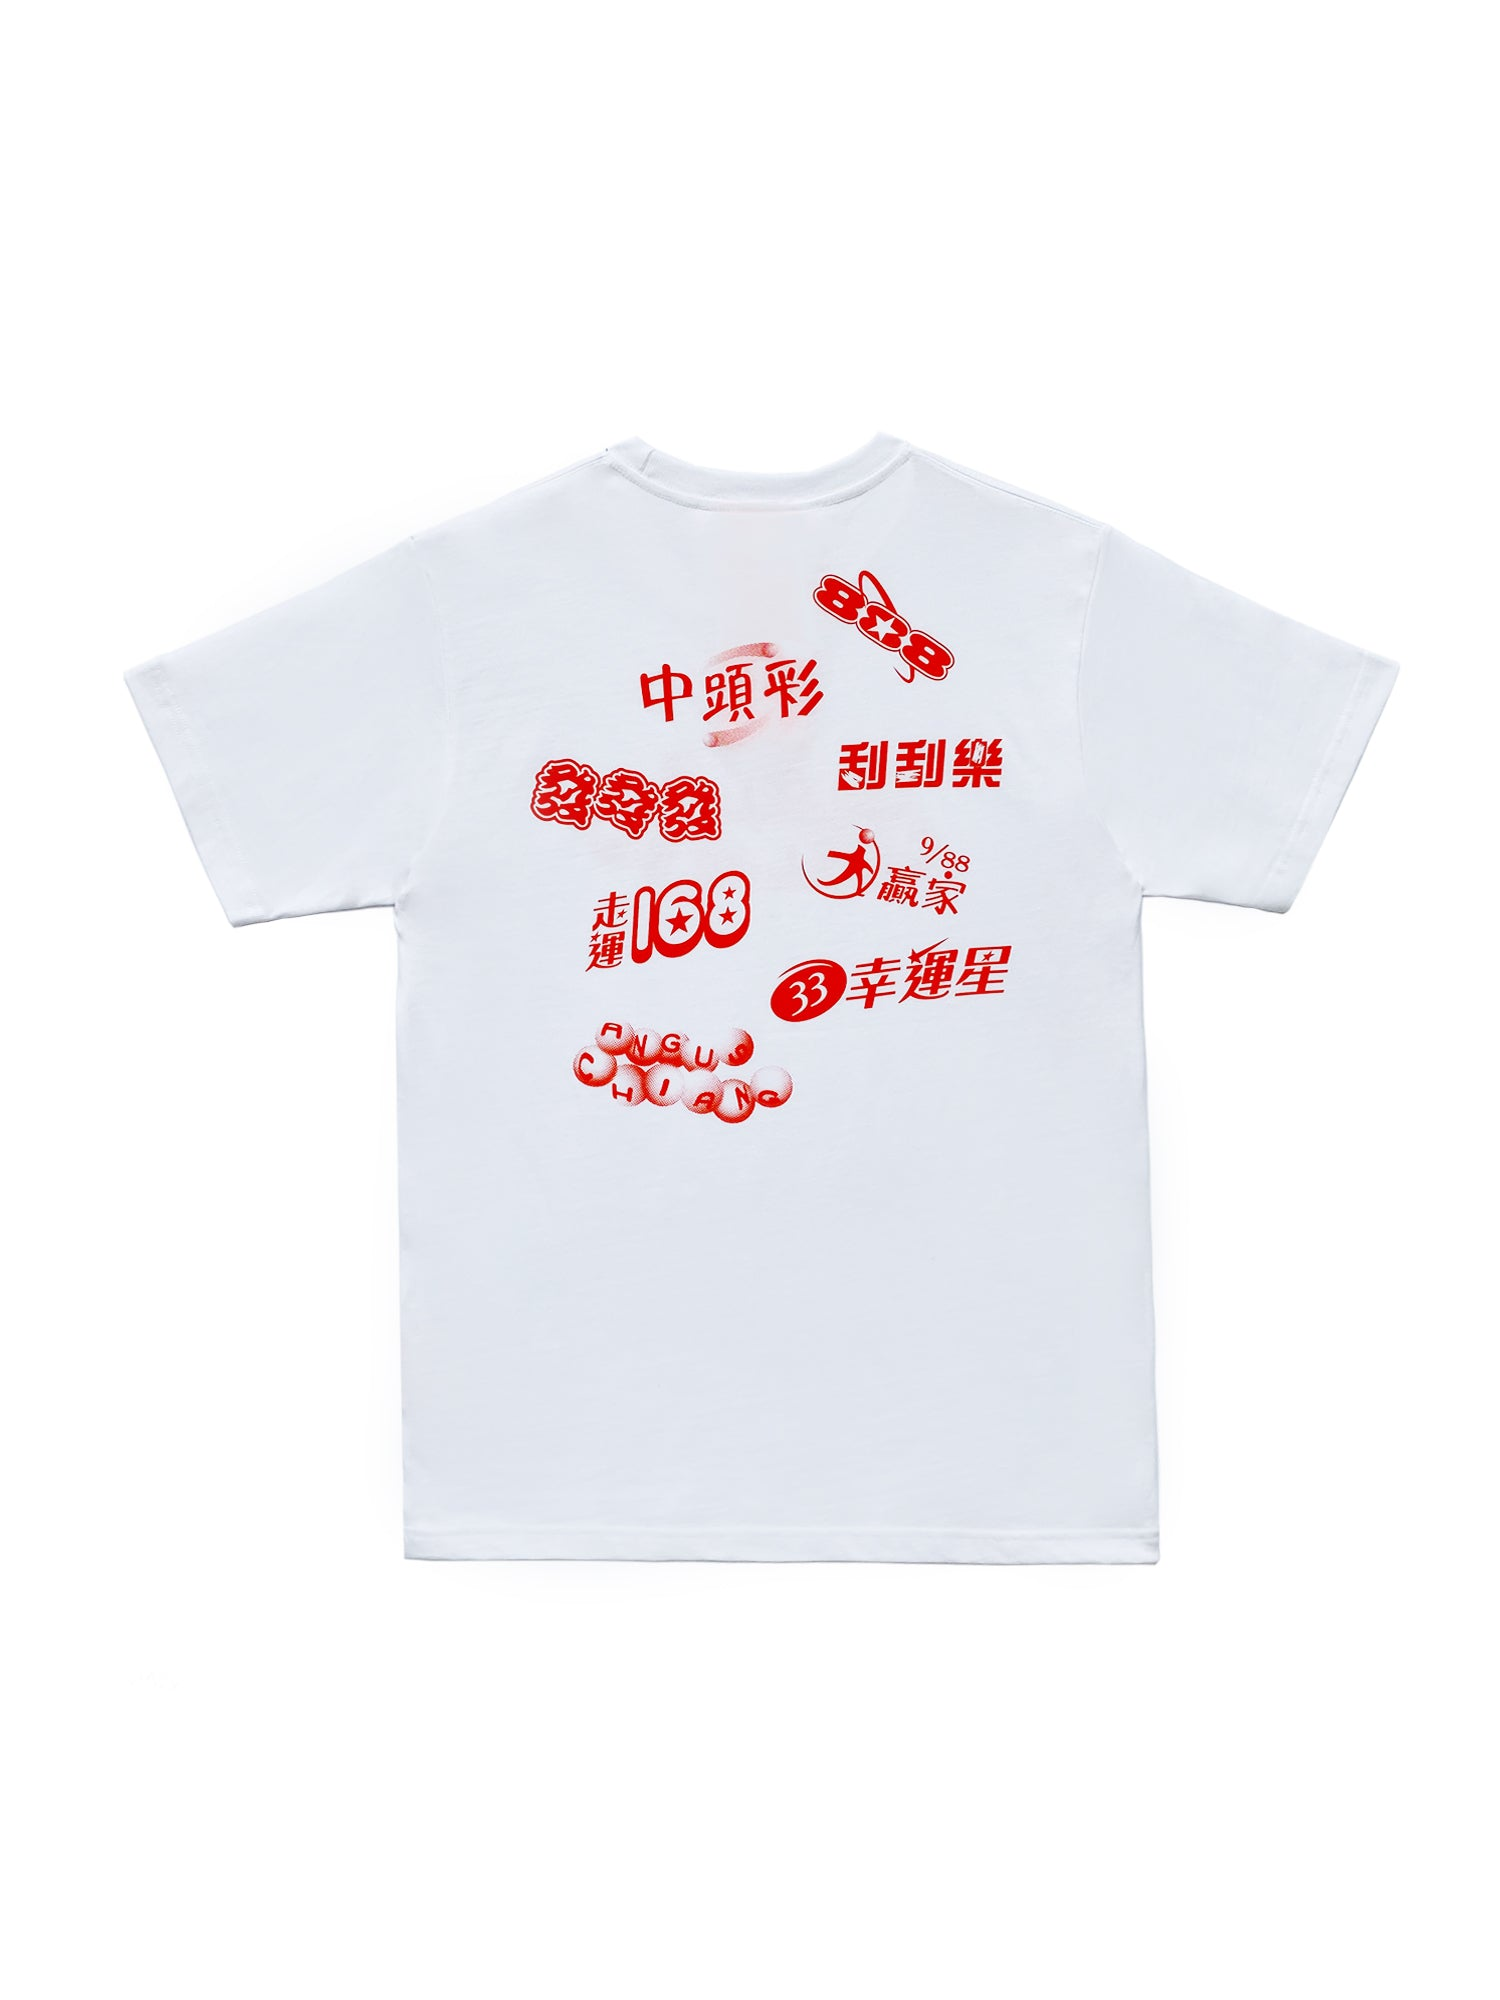 [ HAPPY DRAGON BOAT FESTIVAL ] THE KING OF BINGO!! T-SHIRT